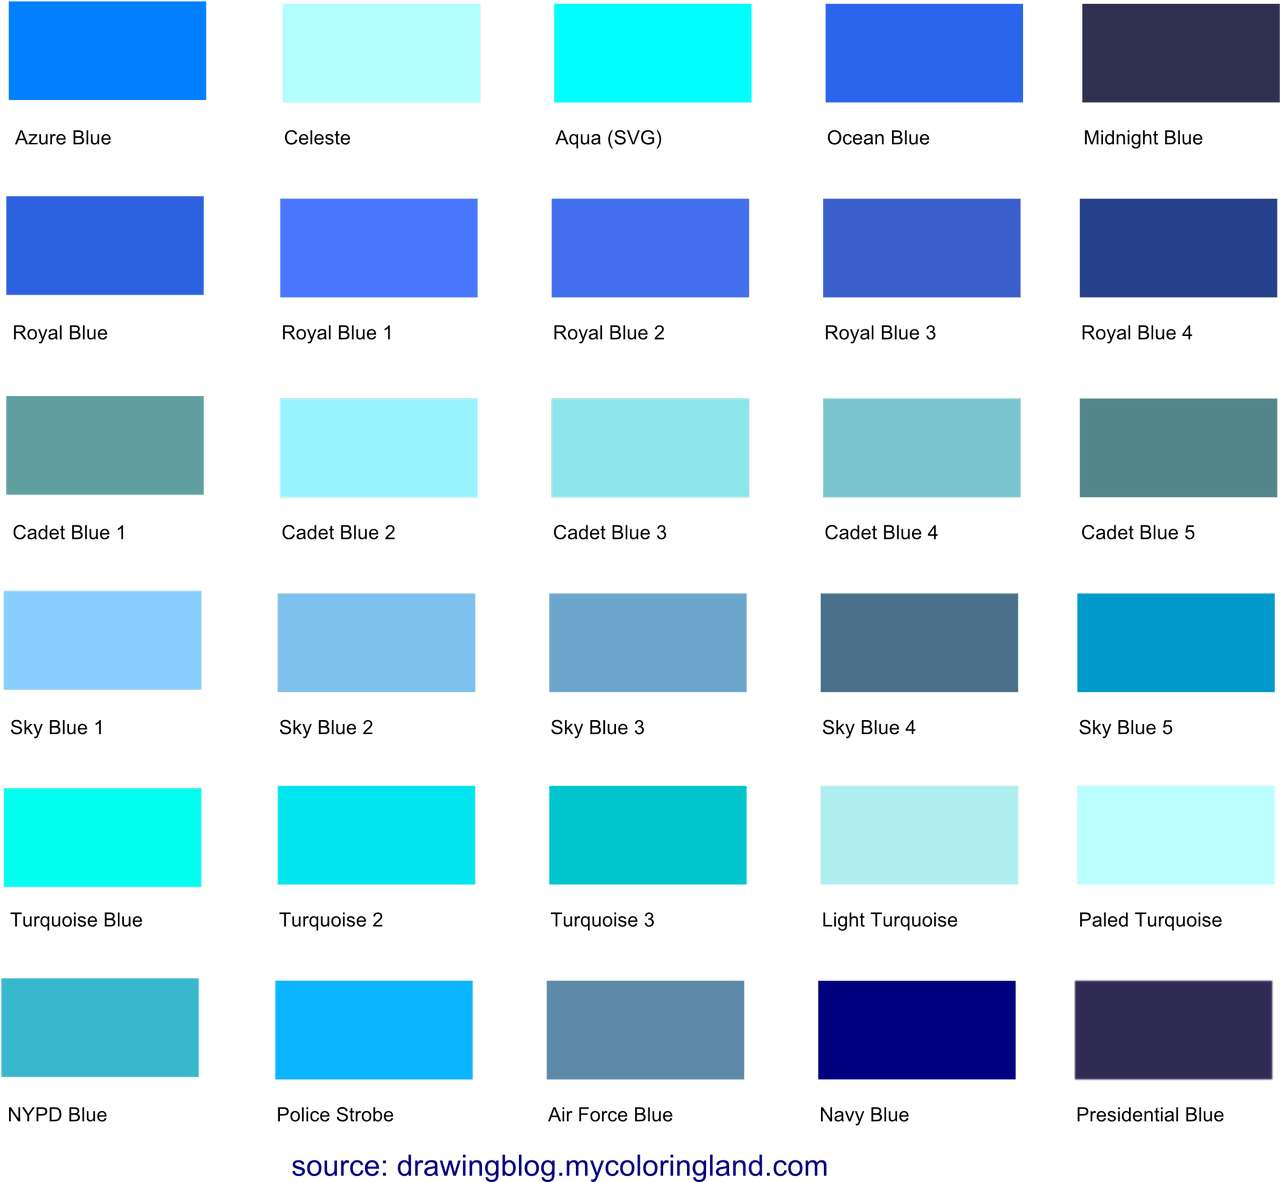 Swanky Brown What Colors Go Codes What Colors Go Color Names Different Shades A List Navy Blue Navy Blue Skirt Codes Drawing Blog Different Shades A List Color Names houzz-03 What Colors Go With Navy Blue